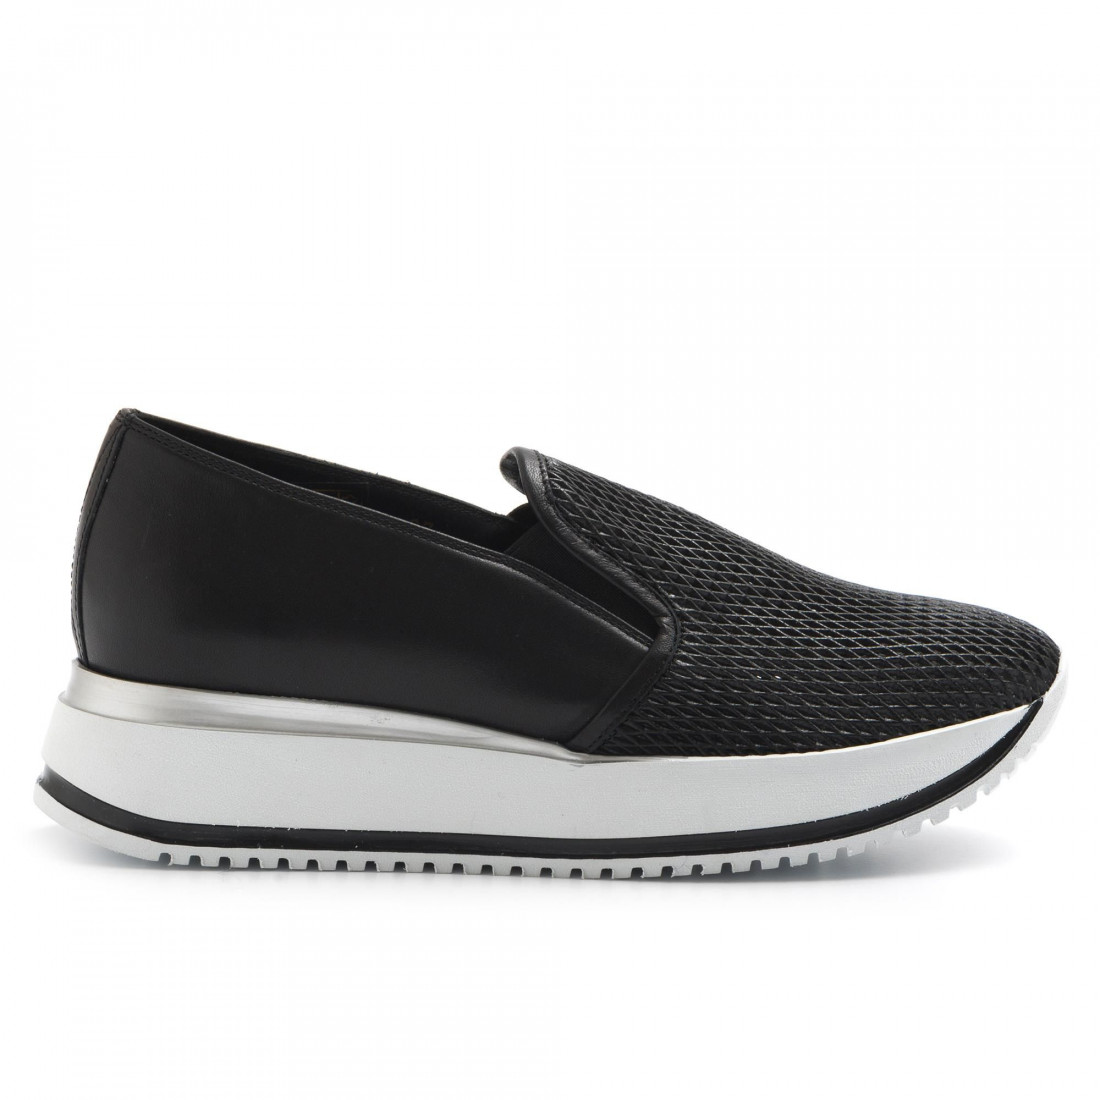 slip on woman sax 21603madras nero 3238